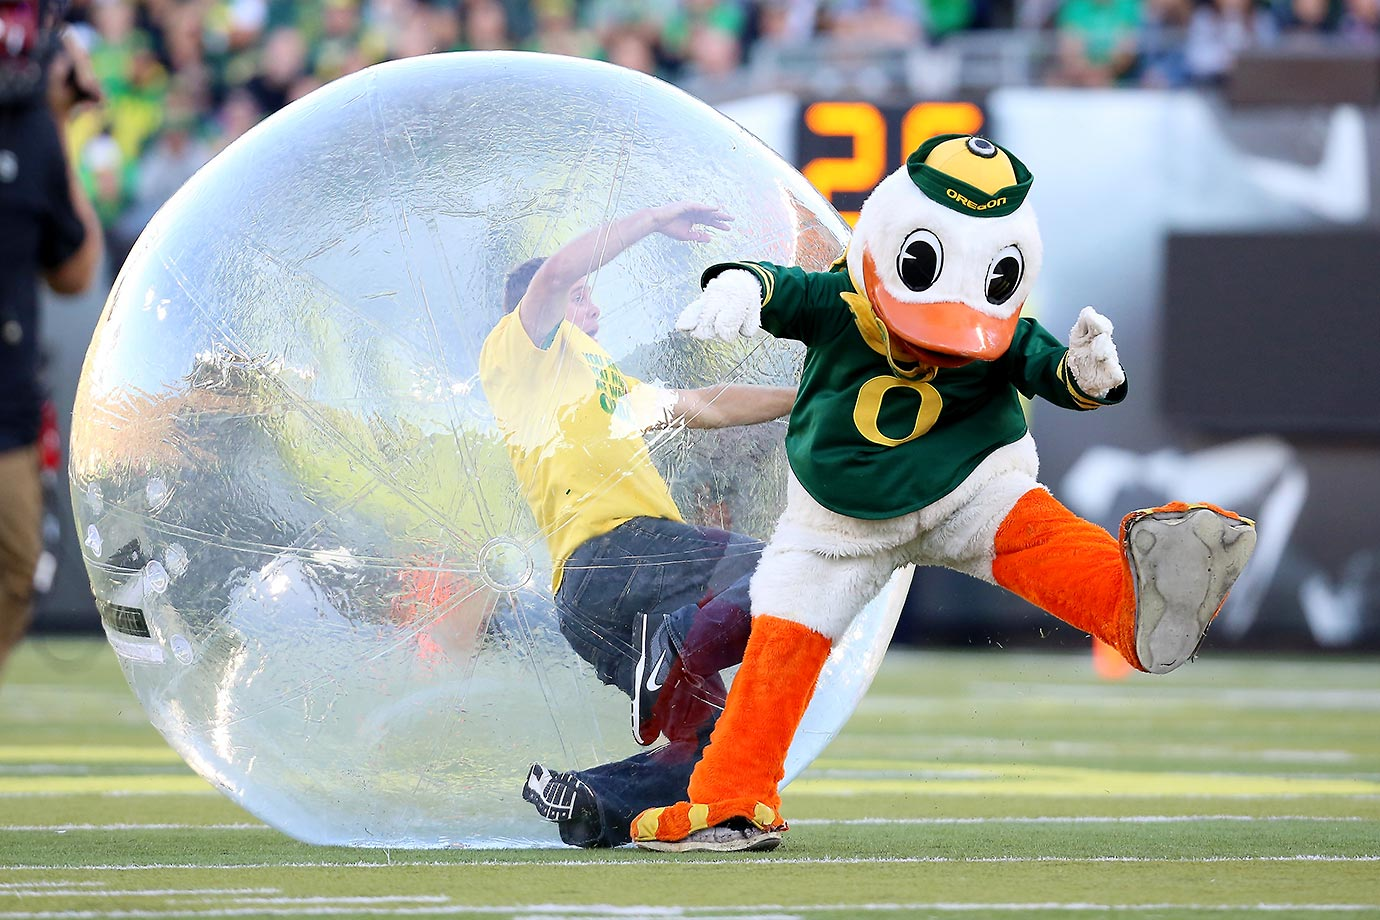 The Oregon mascot on the field with a fan during a timeout.